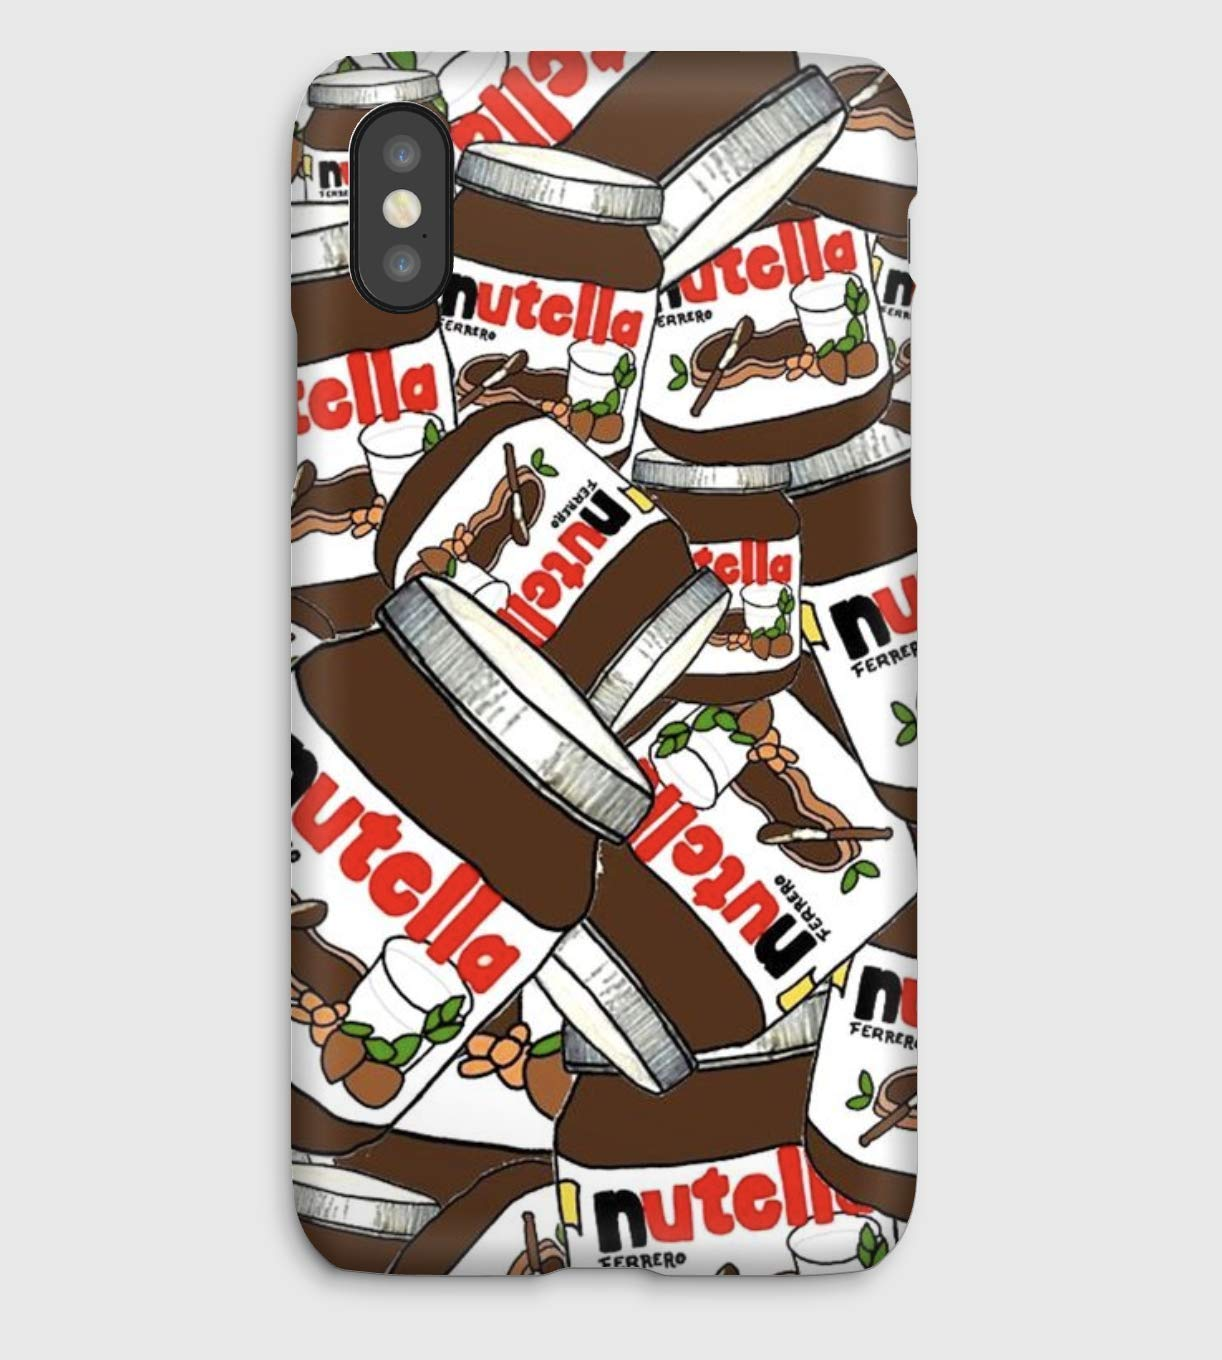 Its good NUTELLA, coque pour iPhone XS, XS Max, XR, X, 8, 8+, 7, 7+, 6S, 6, 6S+, 6+, 5C, 5, 5S, 5SE, 4S, 4,